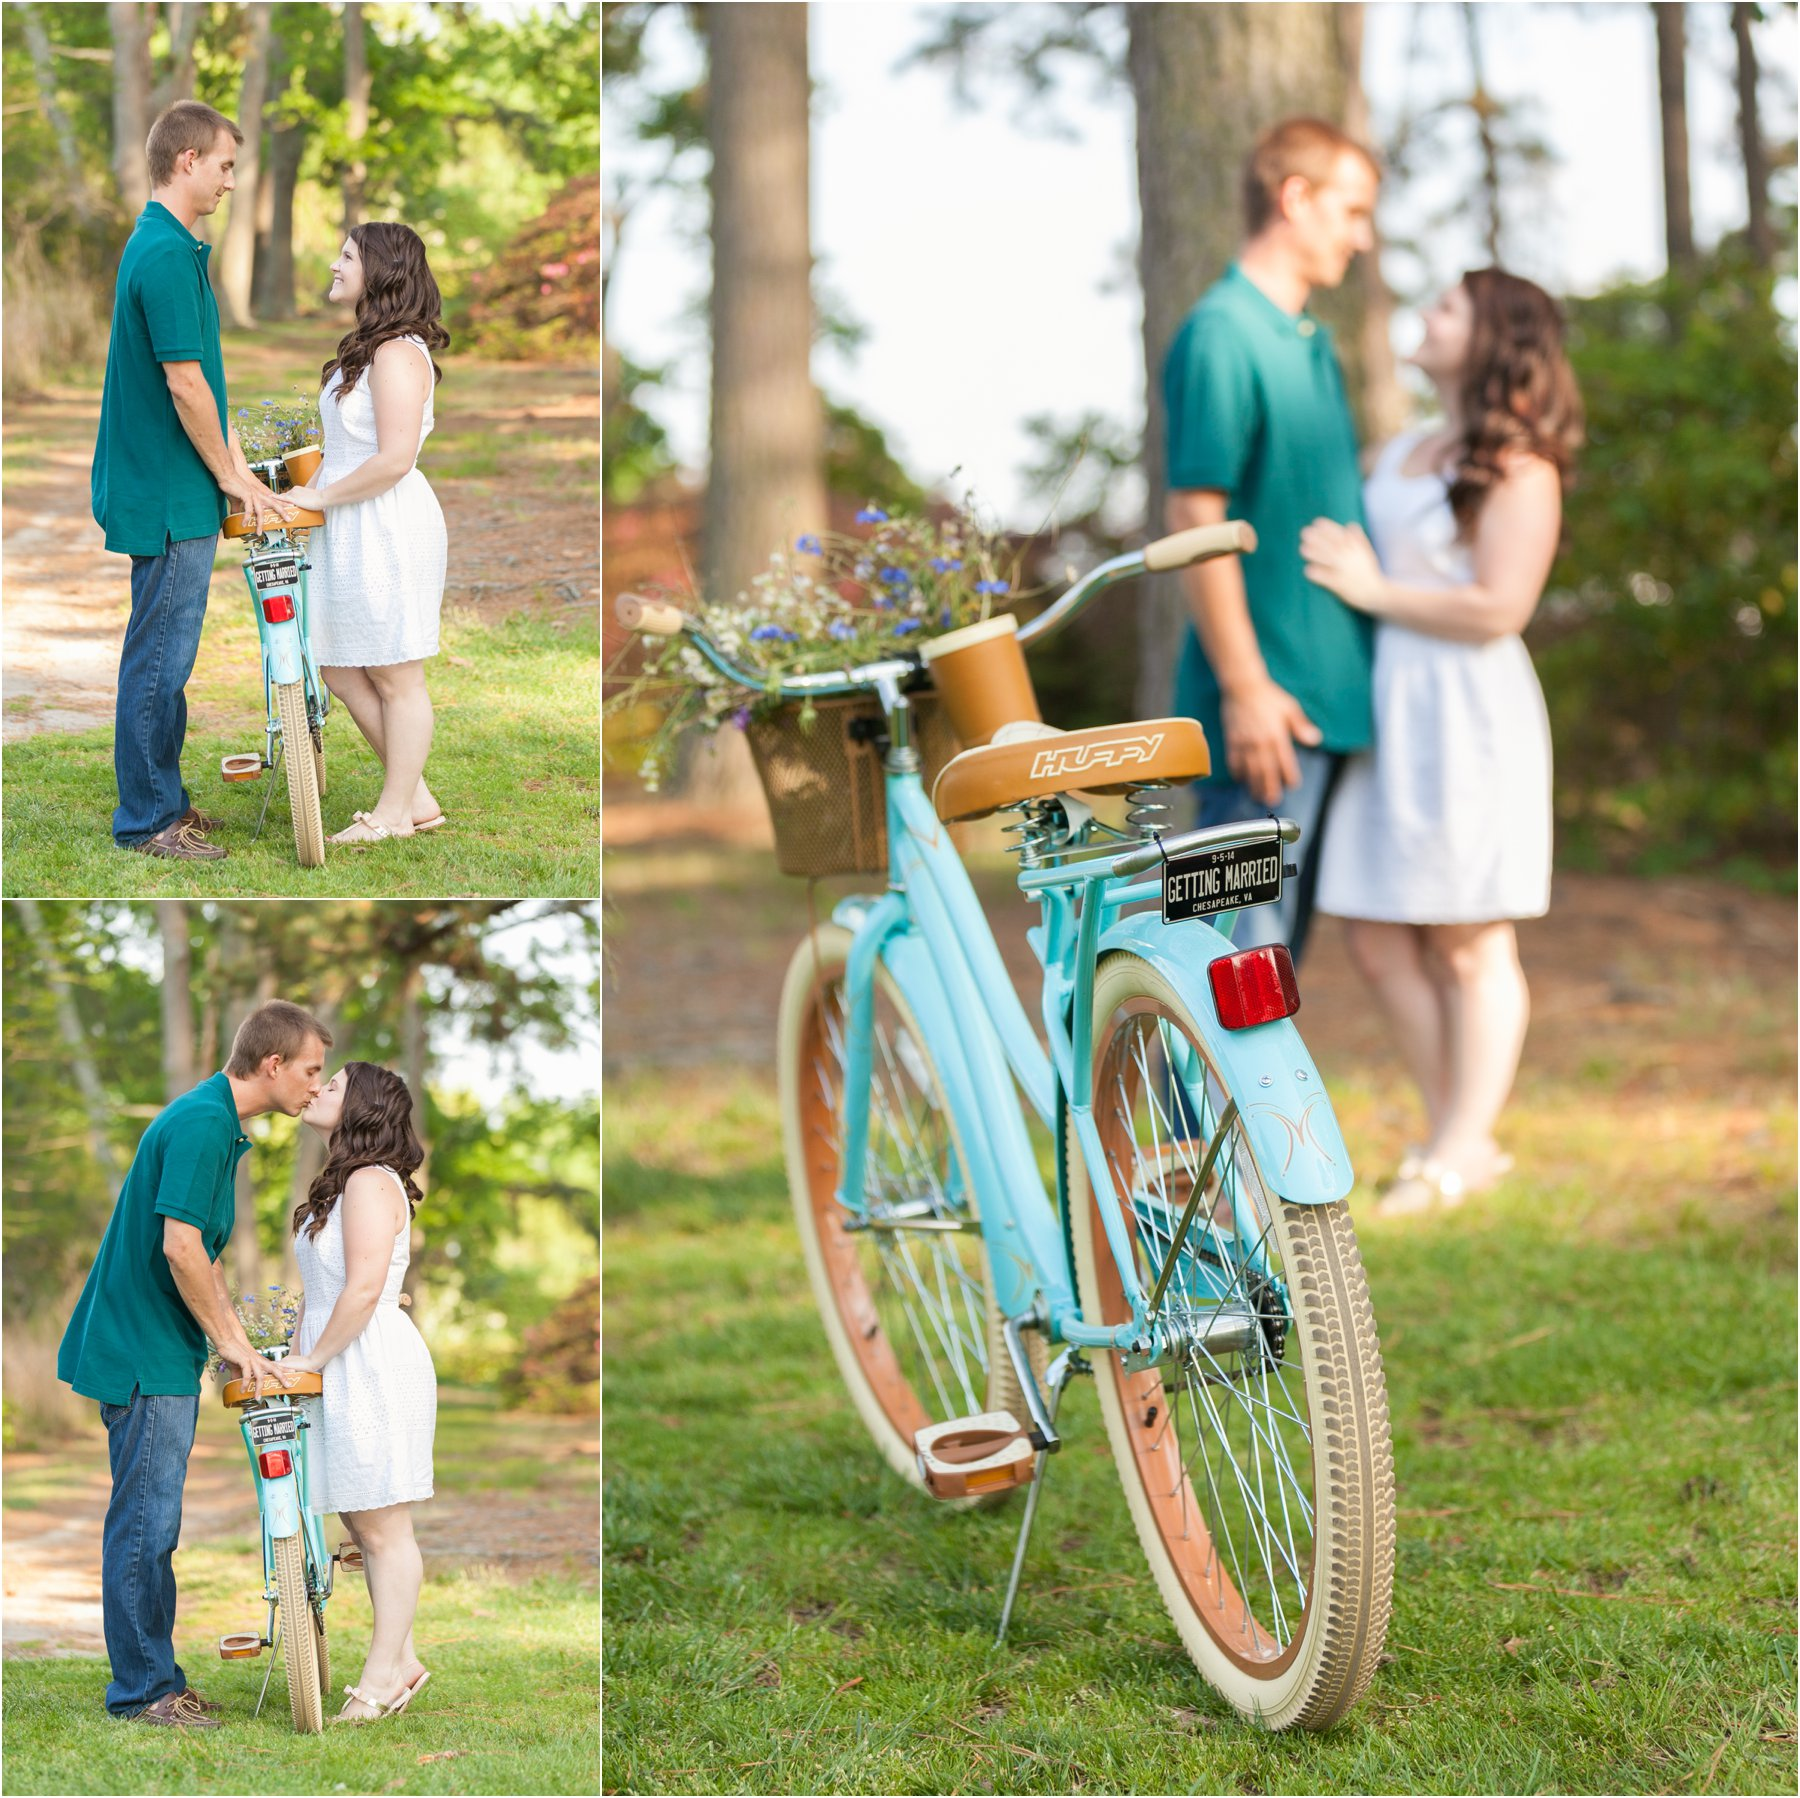 engagement_Photography_bike_ride_engagements_Jessica_Ryan_Photography_virginia_virginia_beach_0314